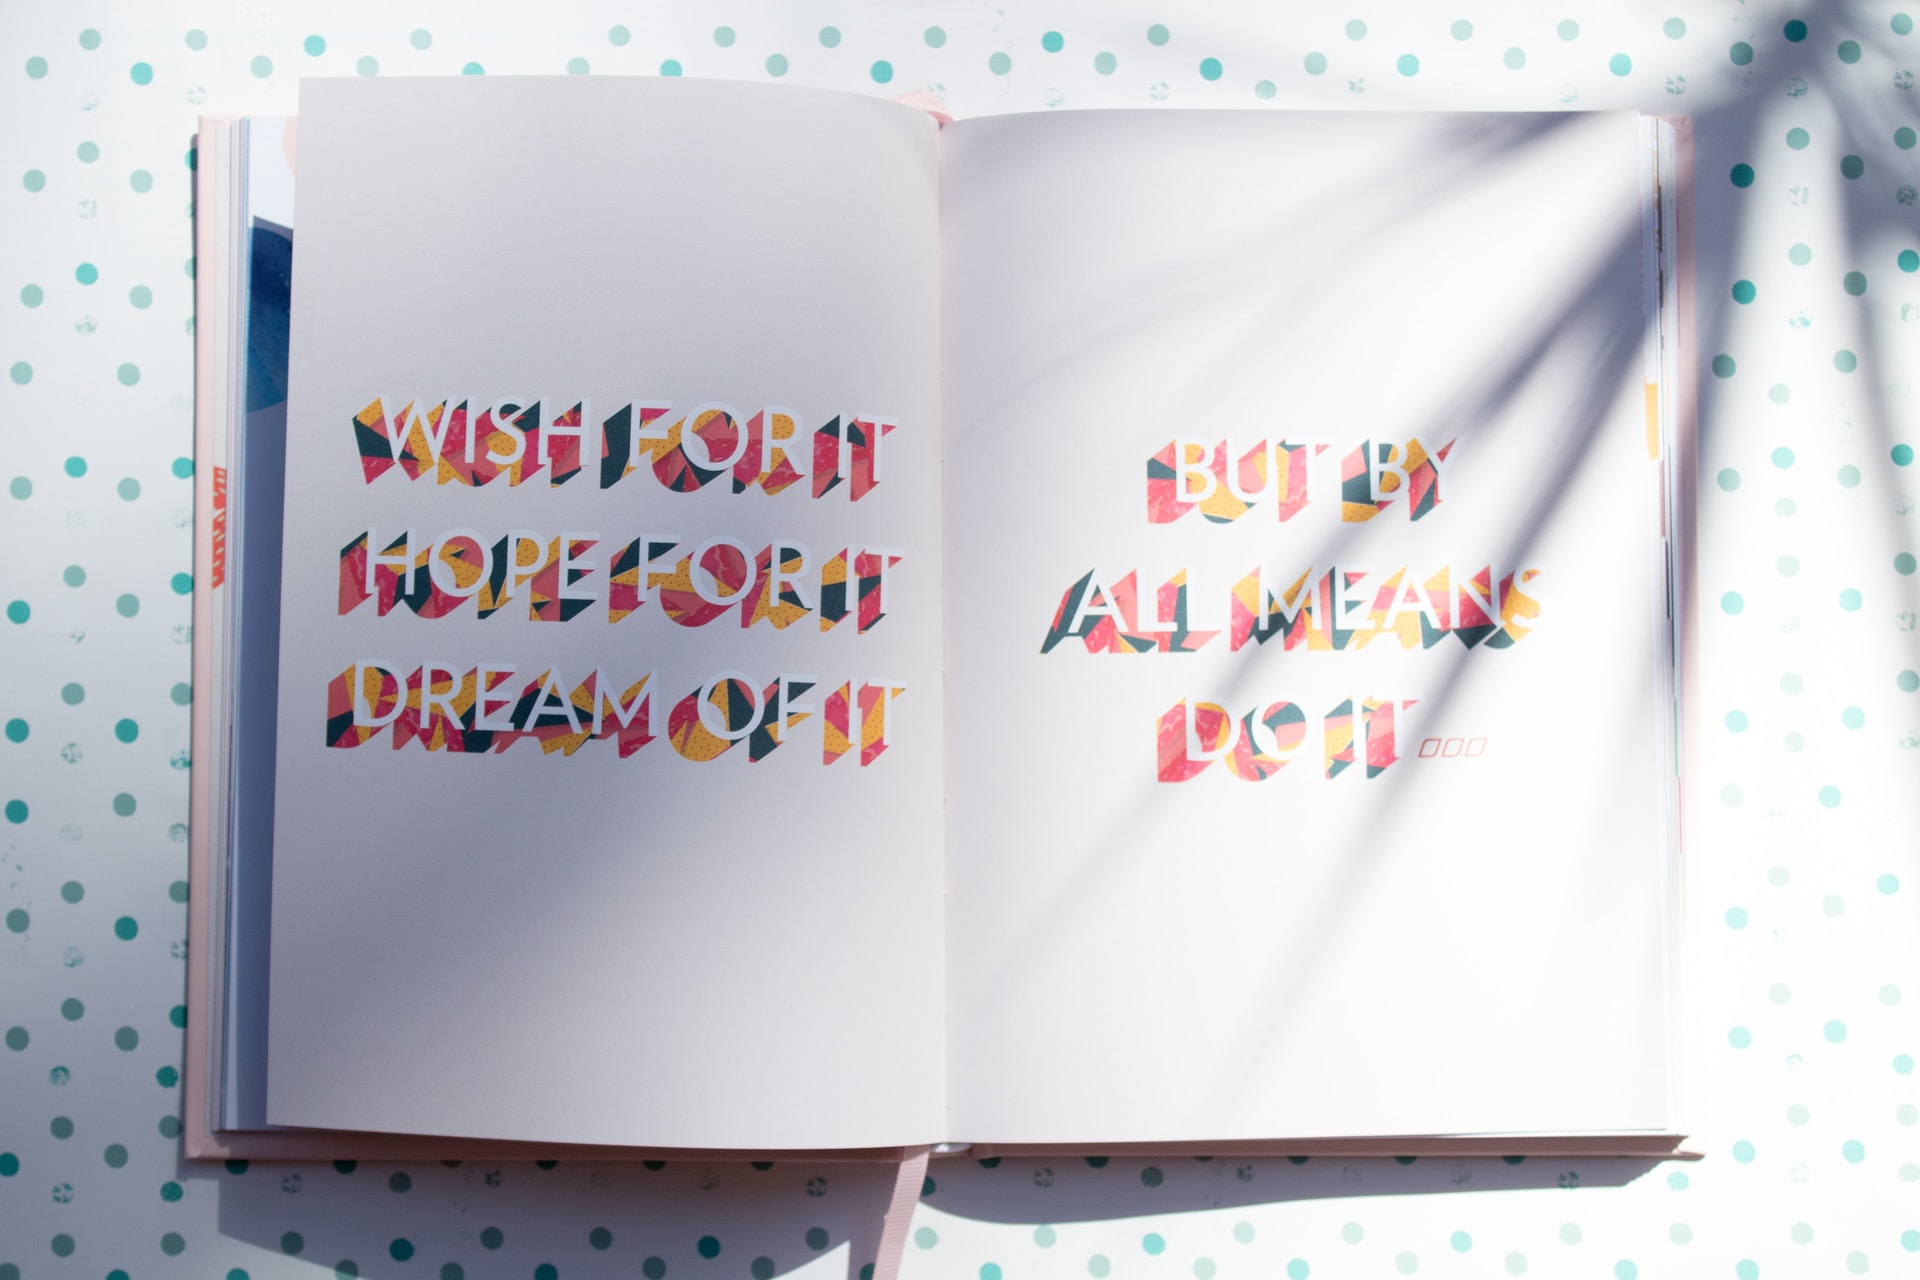 white book with text